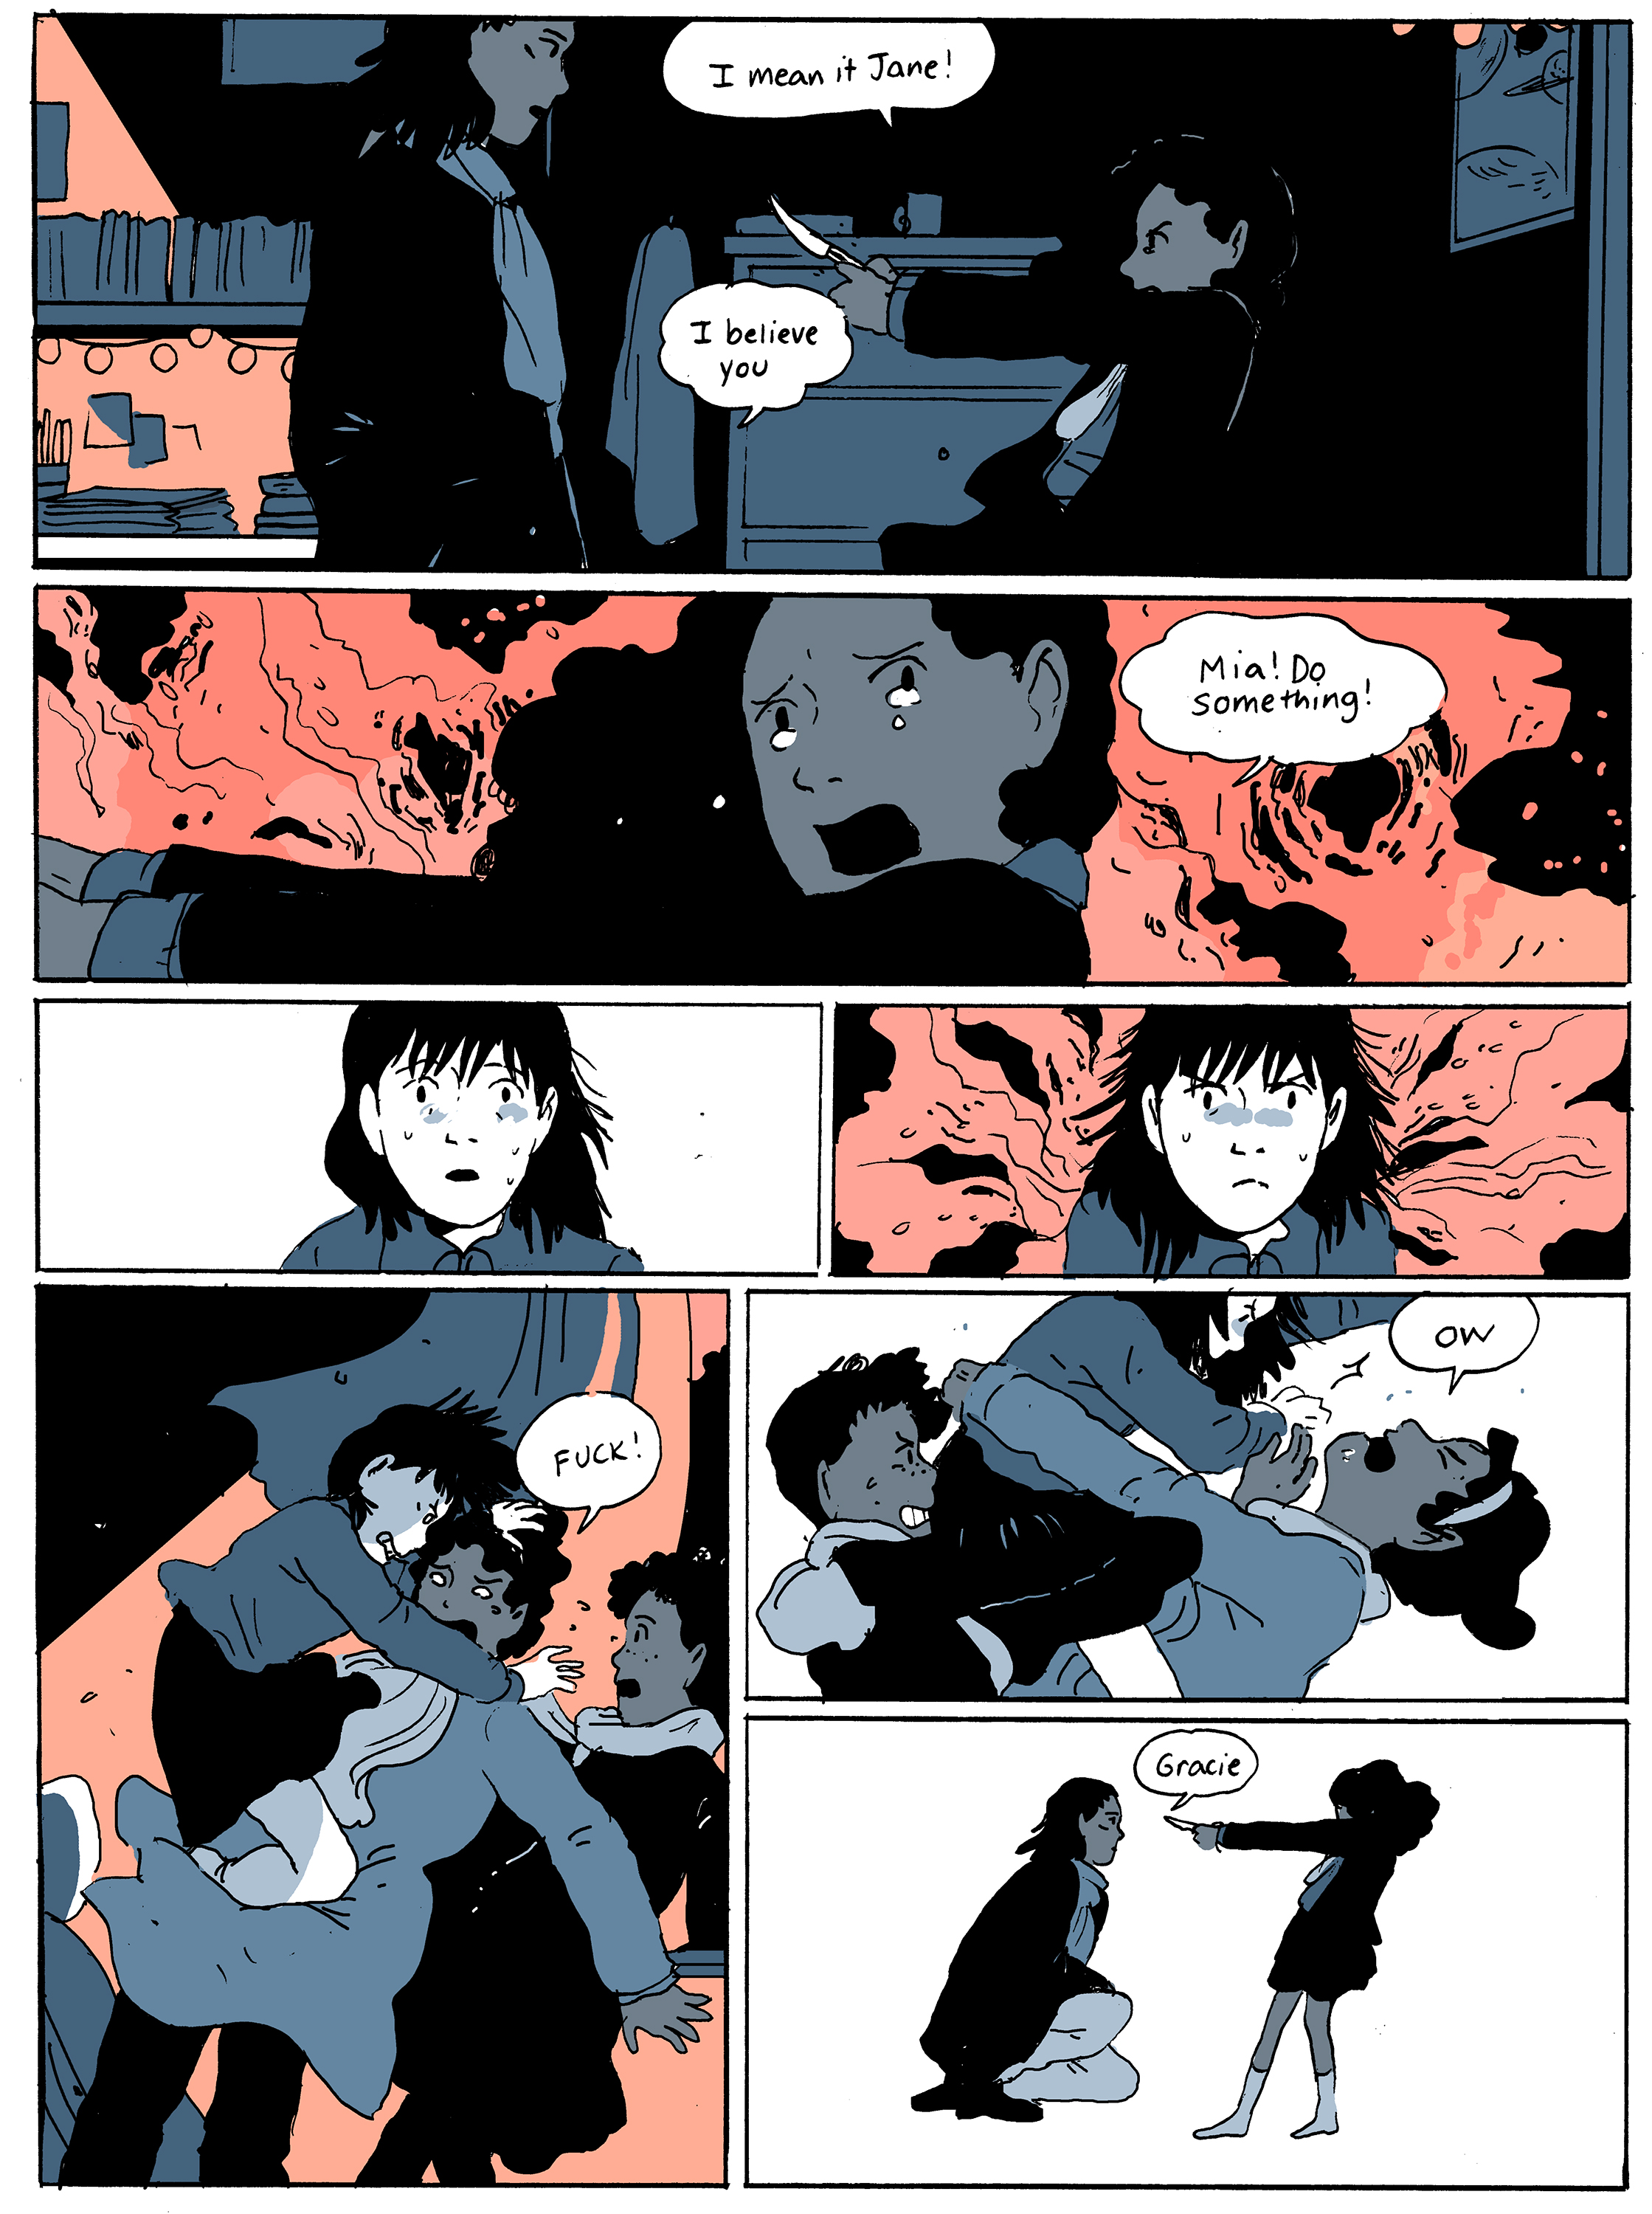 chapter12_page06.jpg